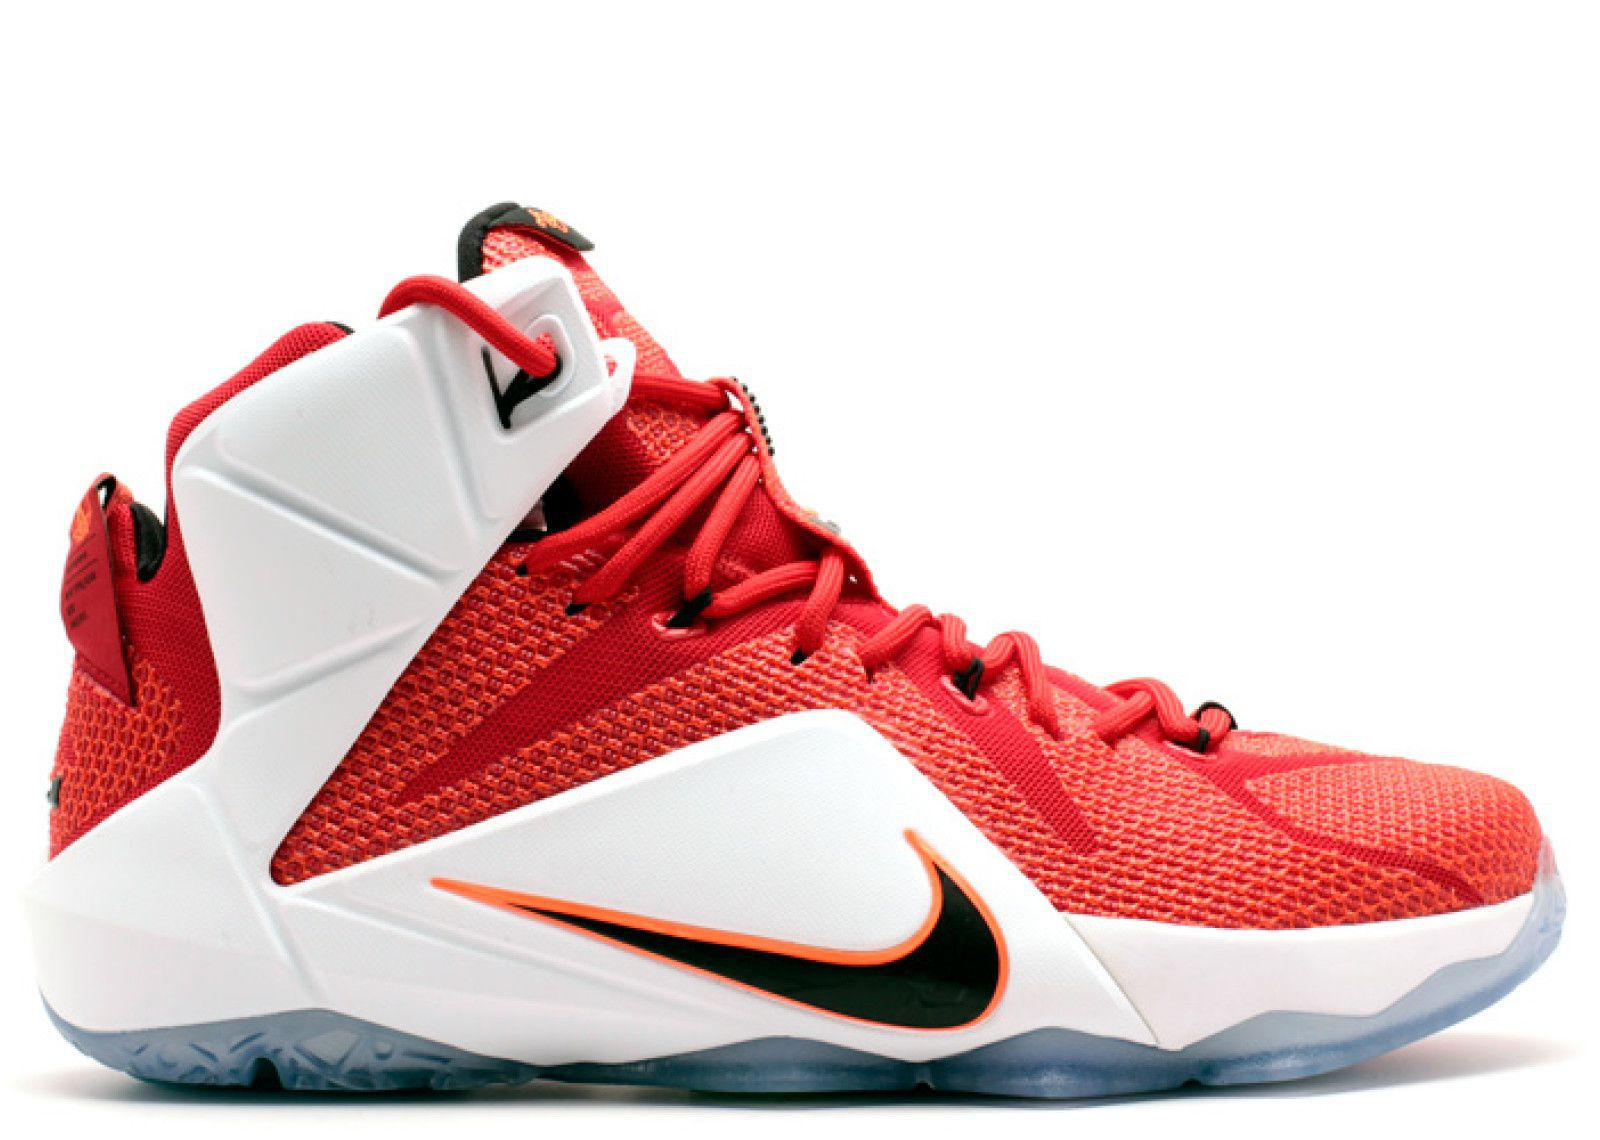 4ba31574ea4 Nike Lebron X11 Heart Of A Lion Red Basketball Shoes - Buy Nike Lebron X11  Heart Of A Lion Red Basketball Shoes Online at Best Prices in India on  Snapdeal